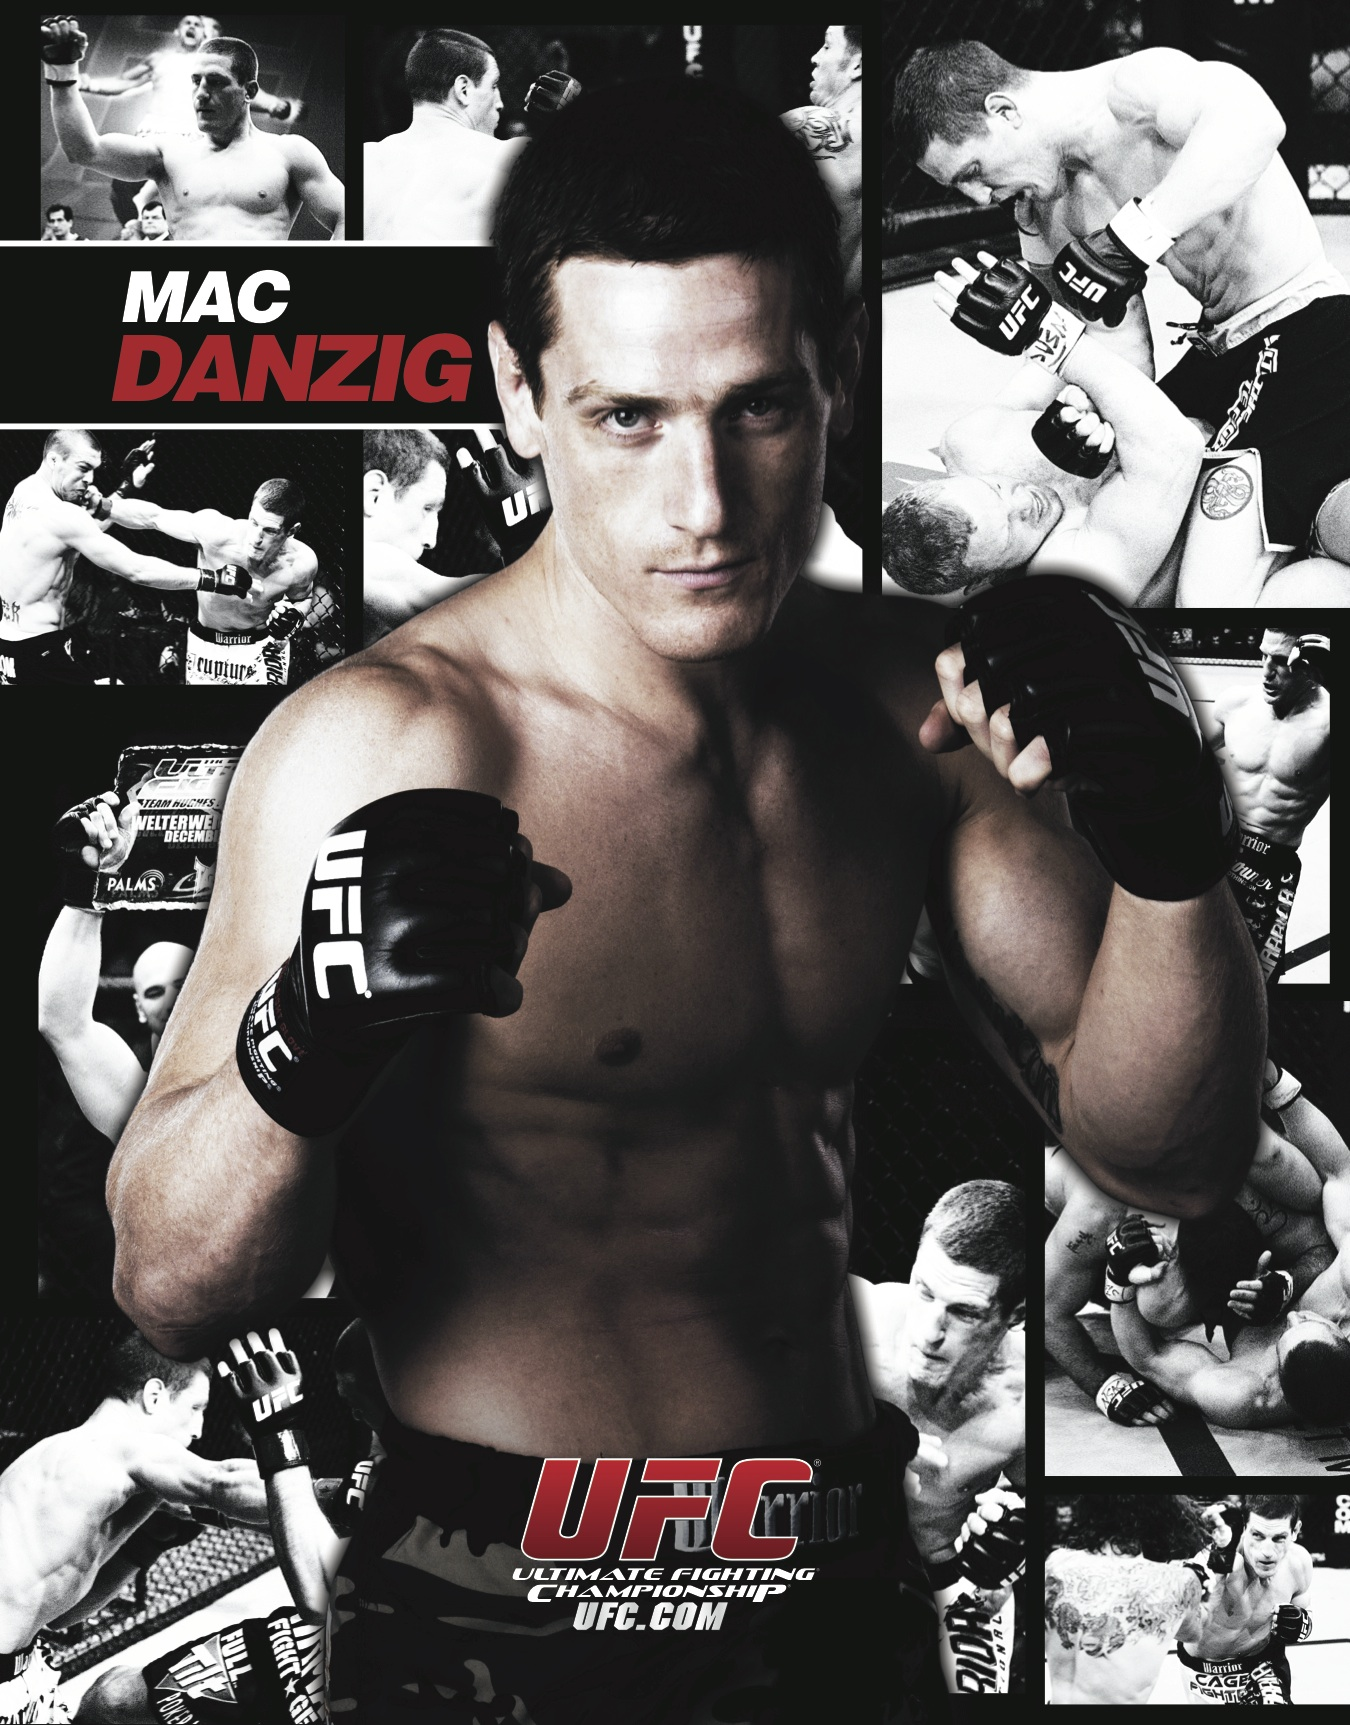 UFC fighter & photographer Mac Danzig